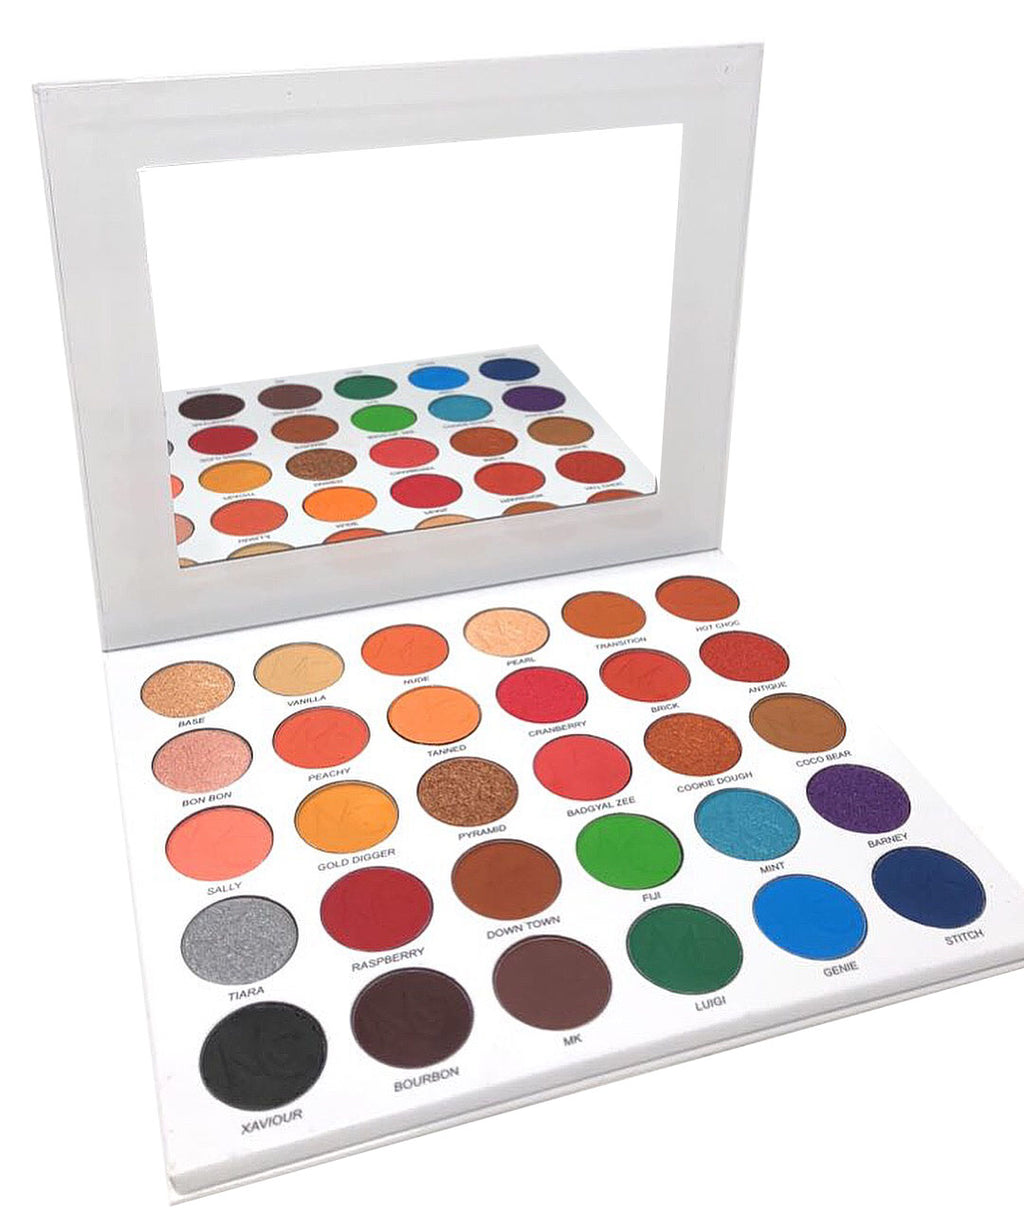 The Ultimate Miinachi Matte and Shimmer Eyeshadow Palette Pigmented 30 Shades Colours